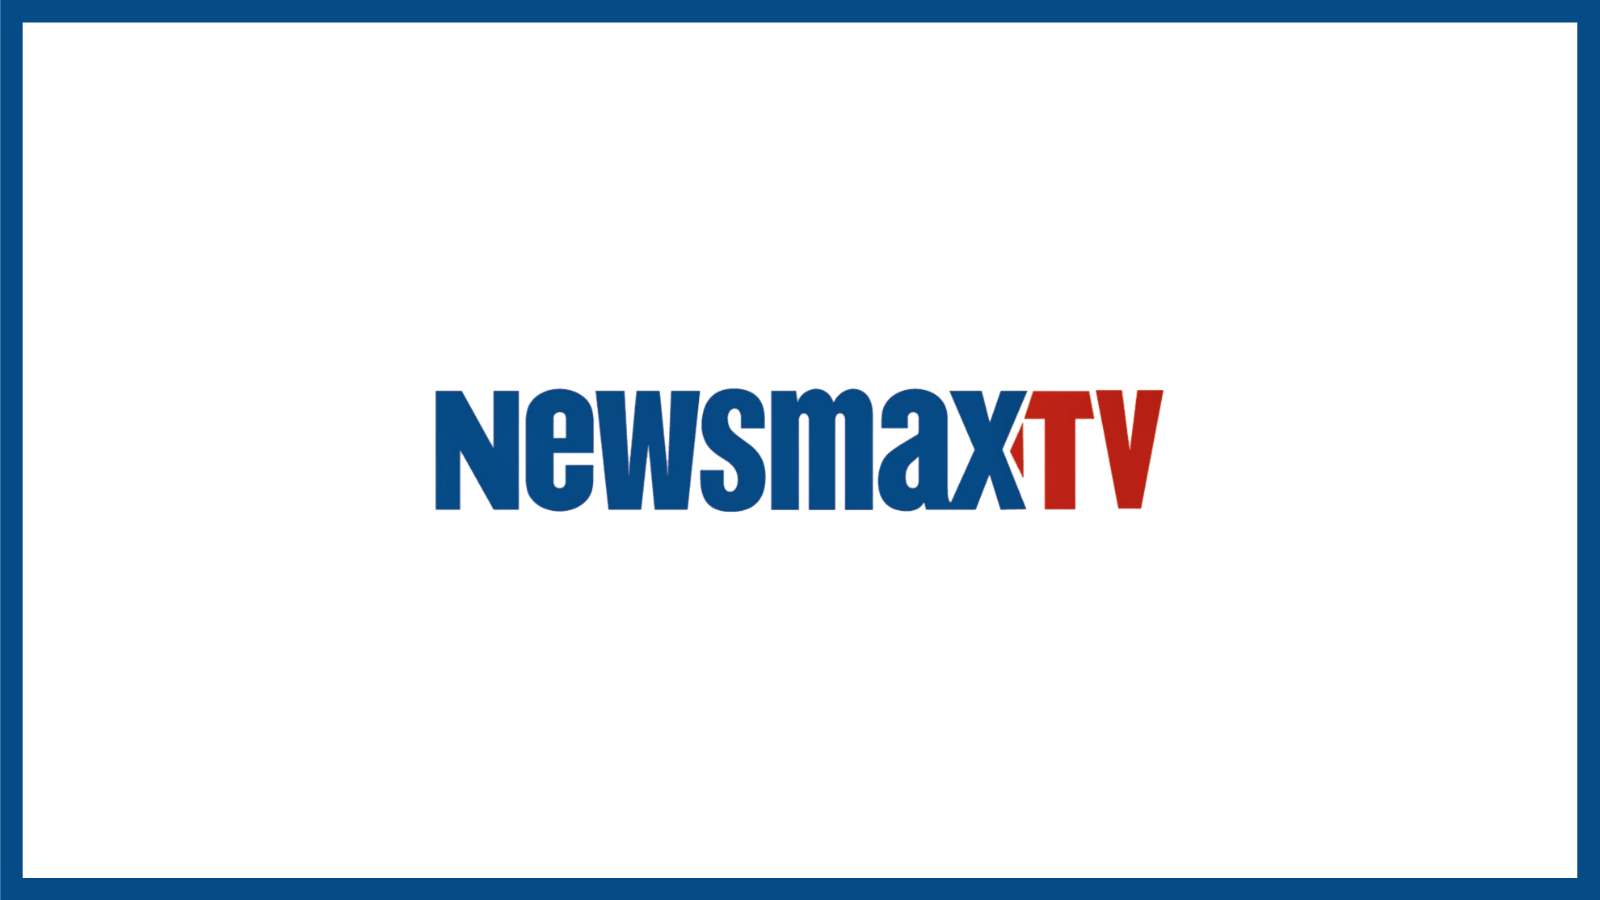 How to Watch Newsmax TV Online Without Cable: Grab an OTT